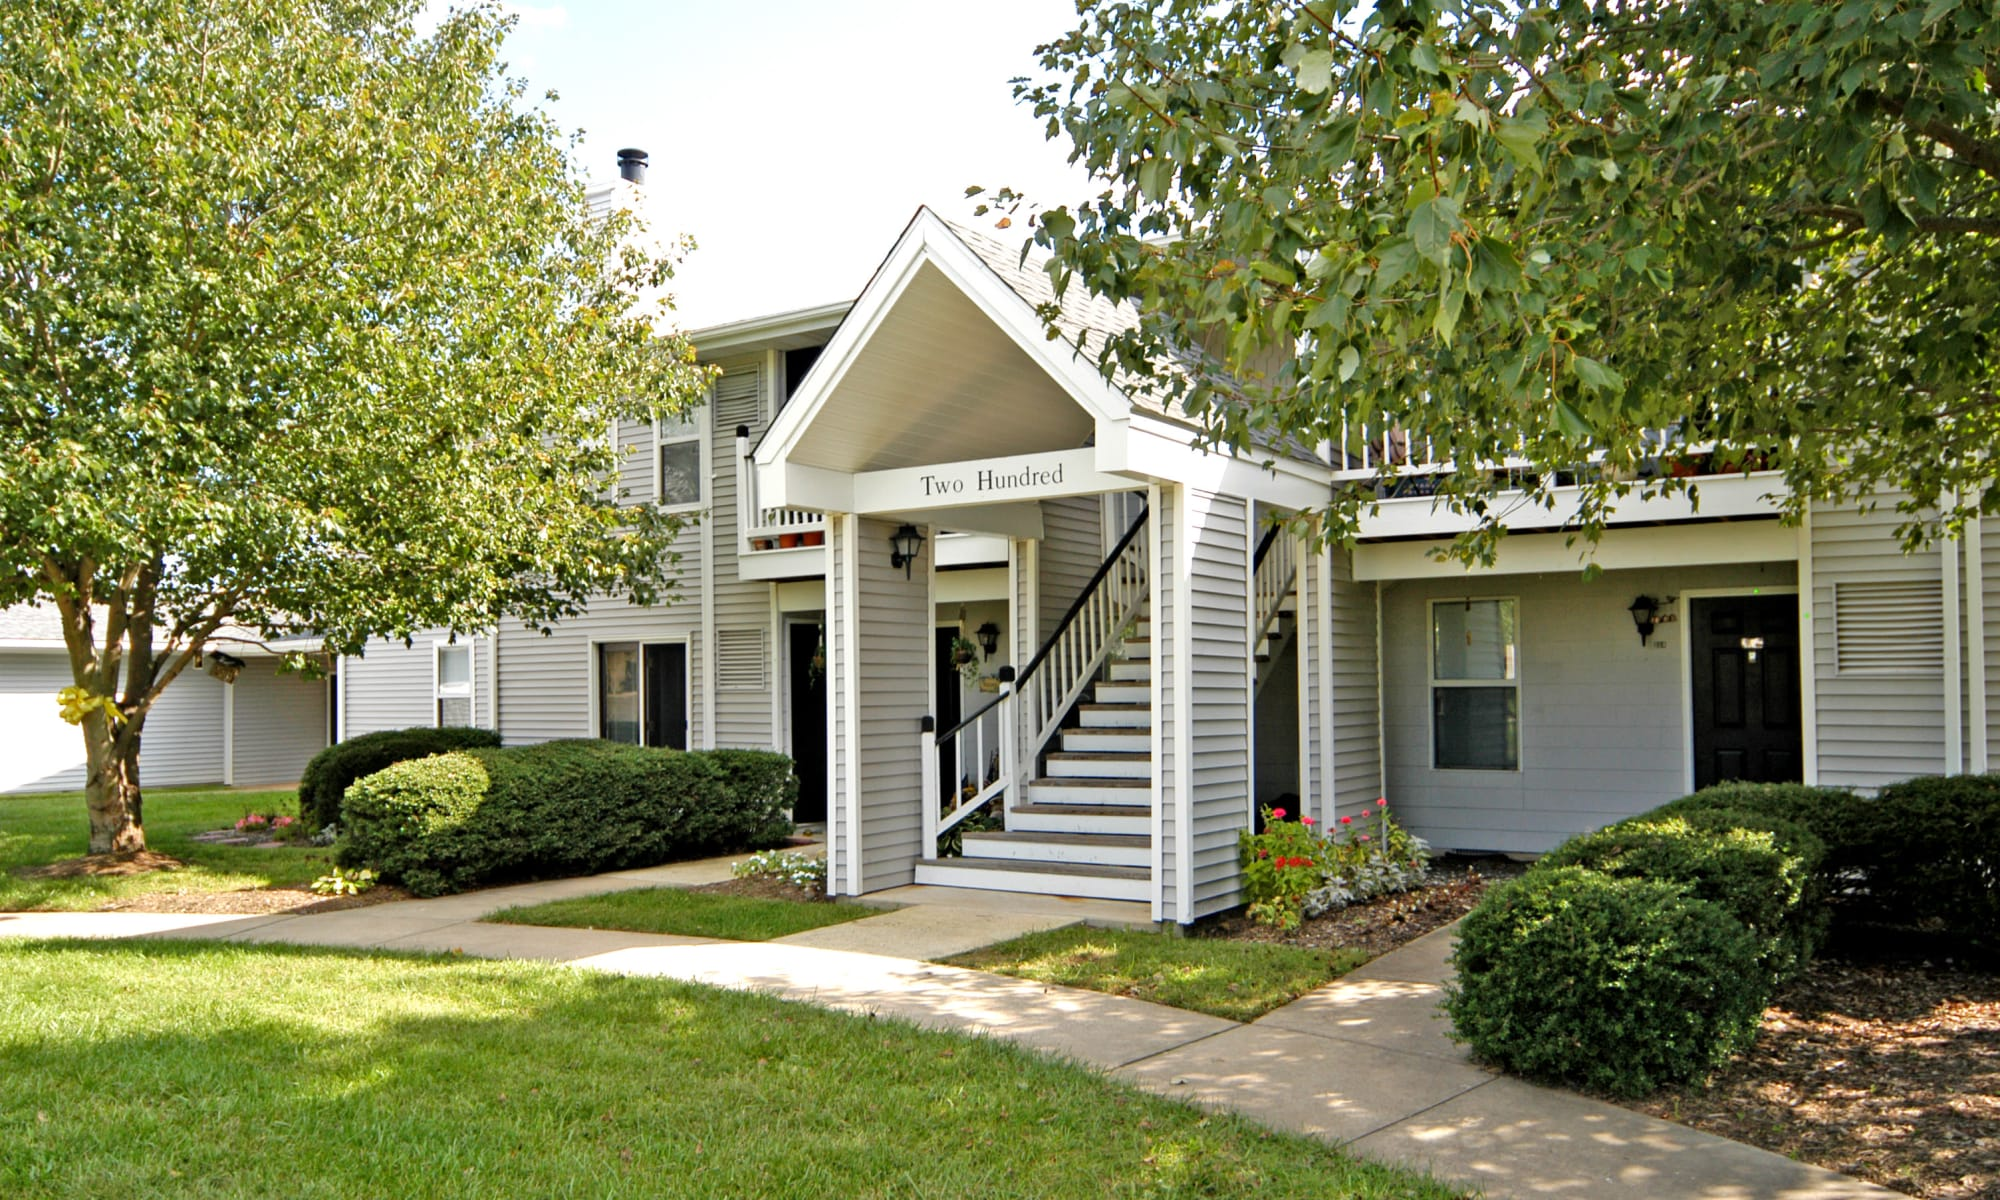 South Easton MD Apartments for Rent